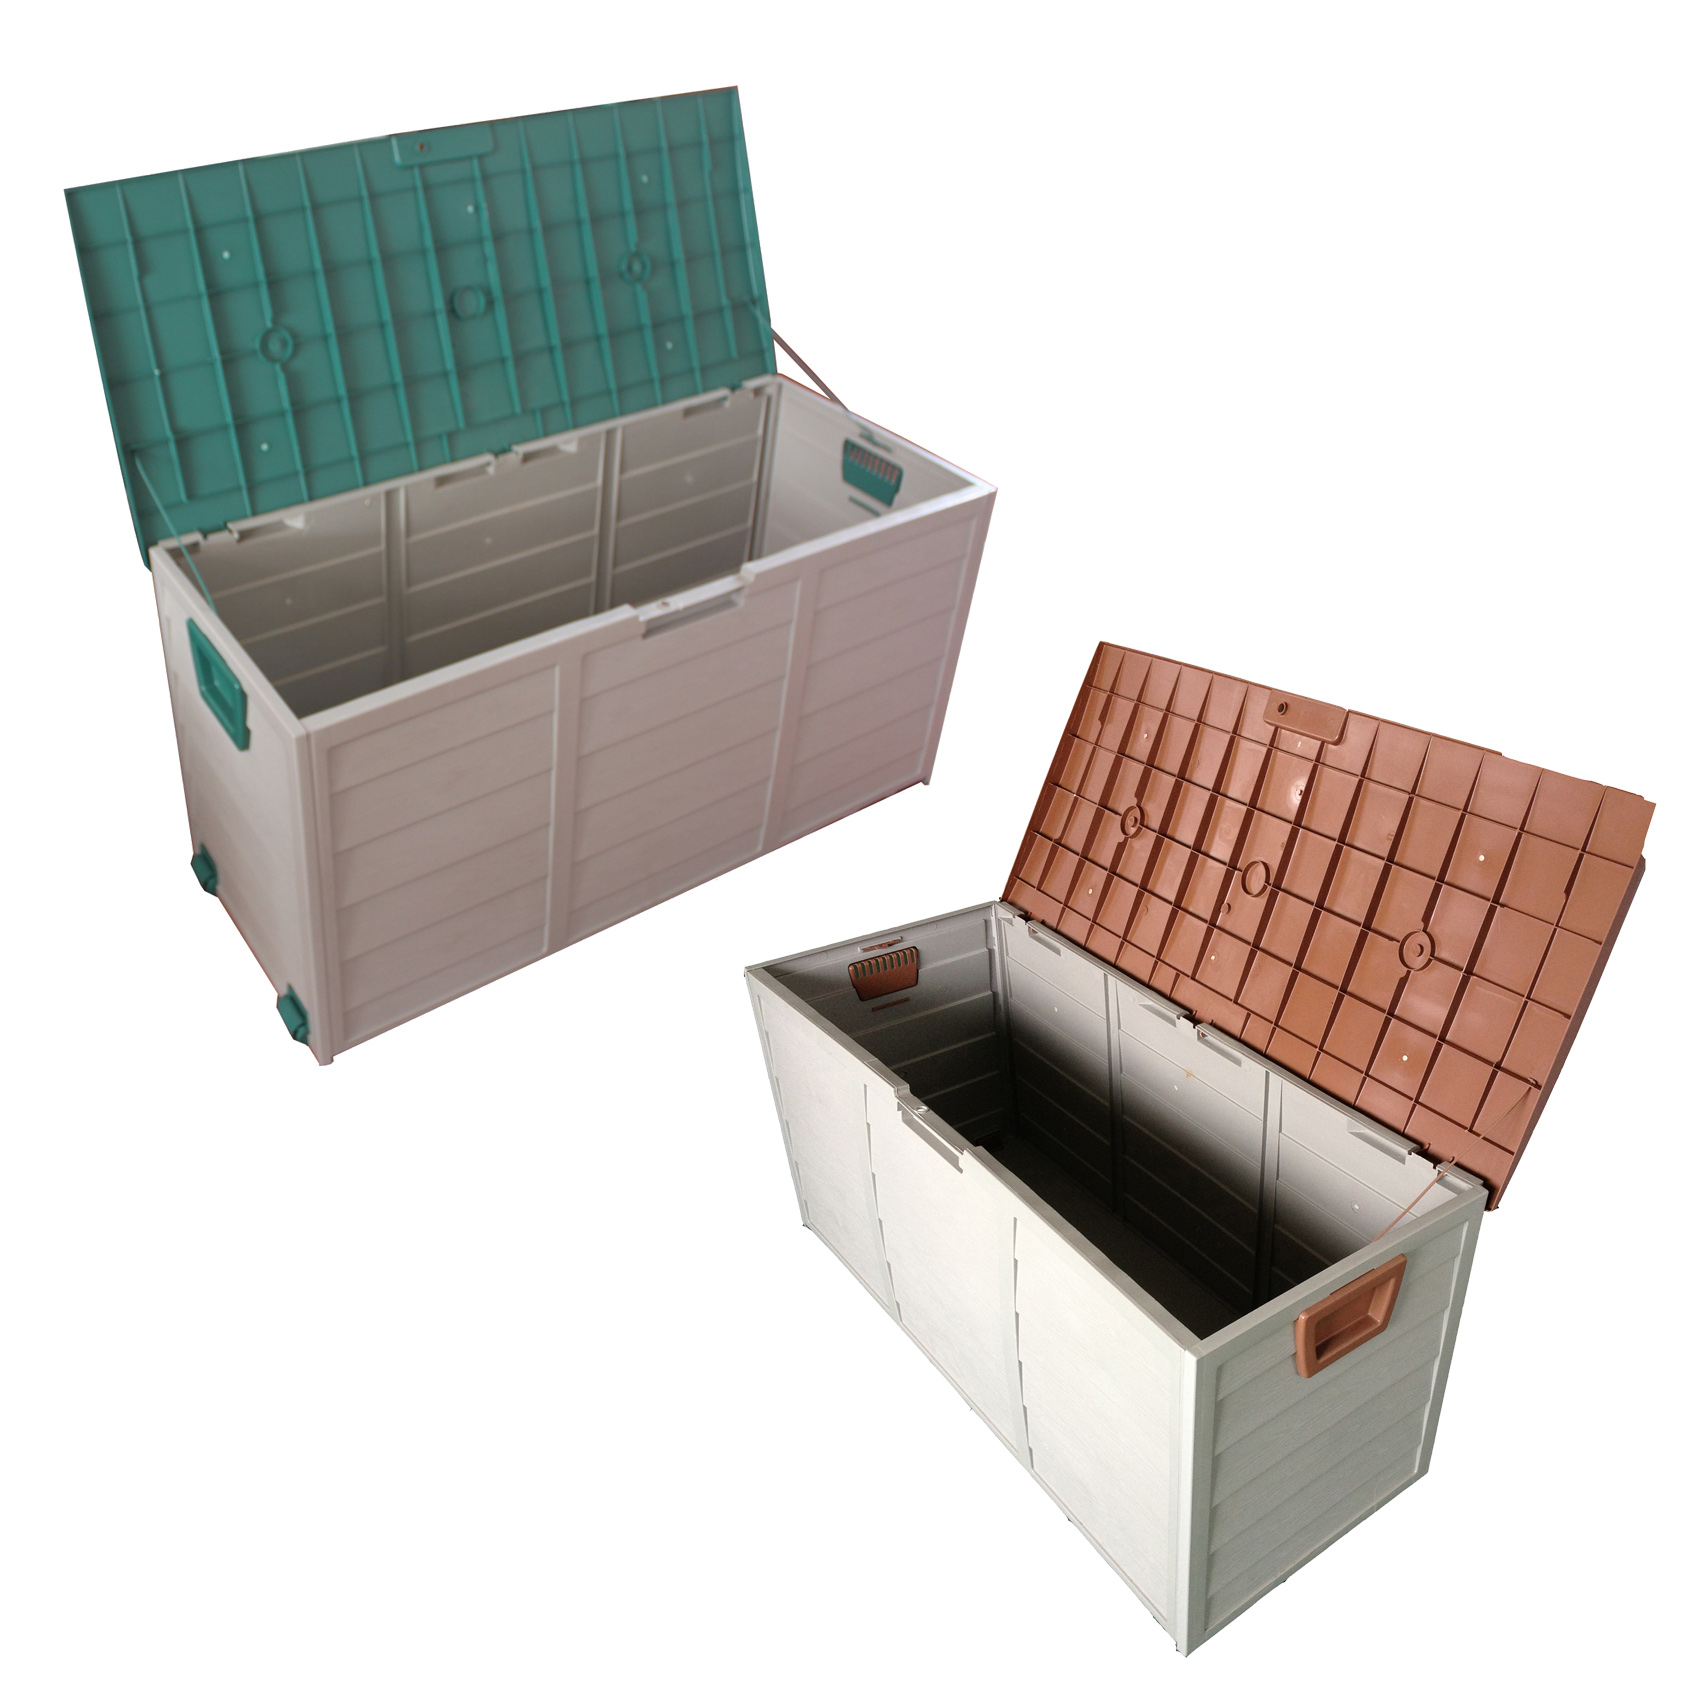 Pvc Outdoor Box : Plastic garden storage sheds riversshed